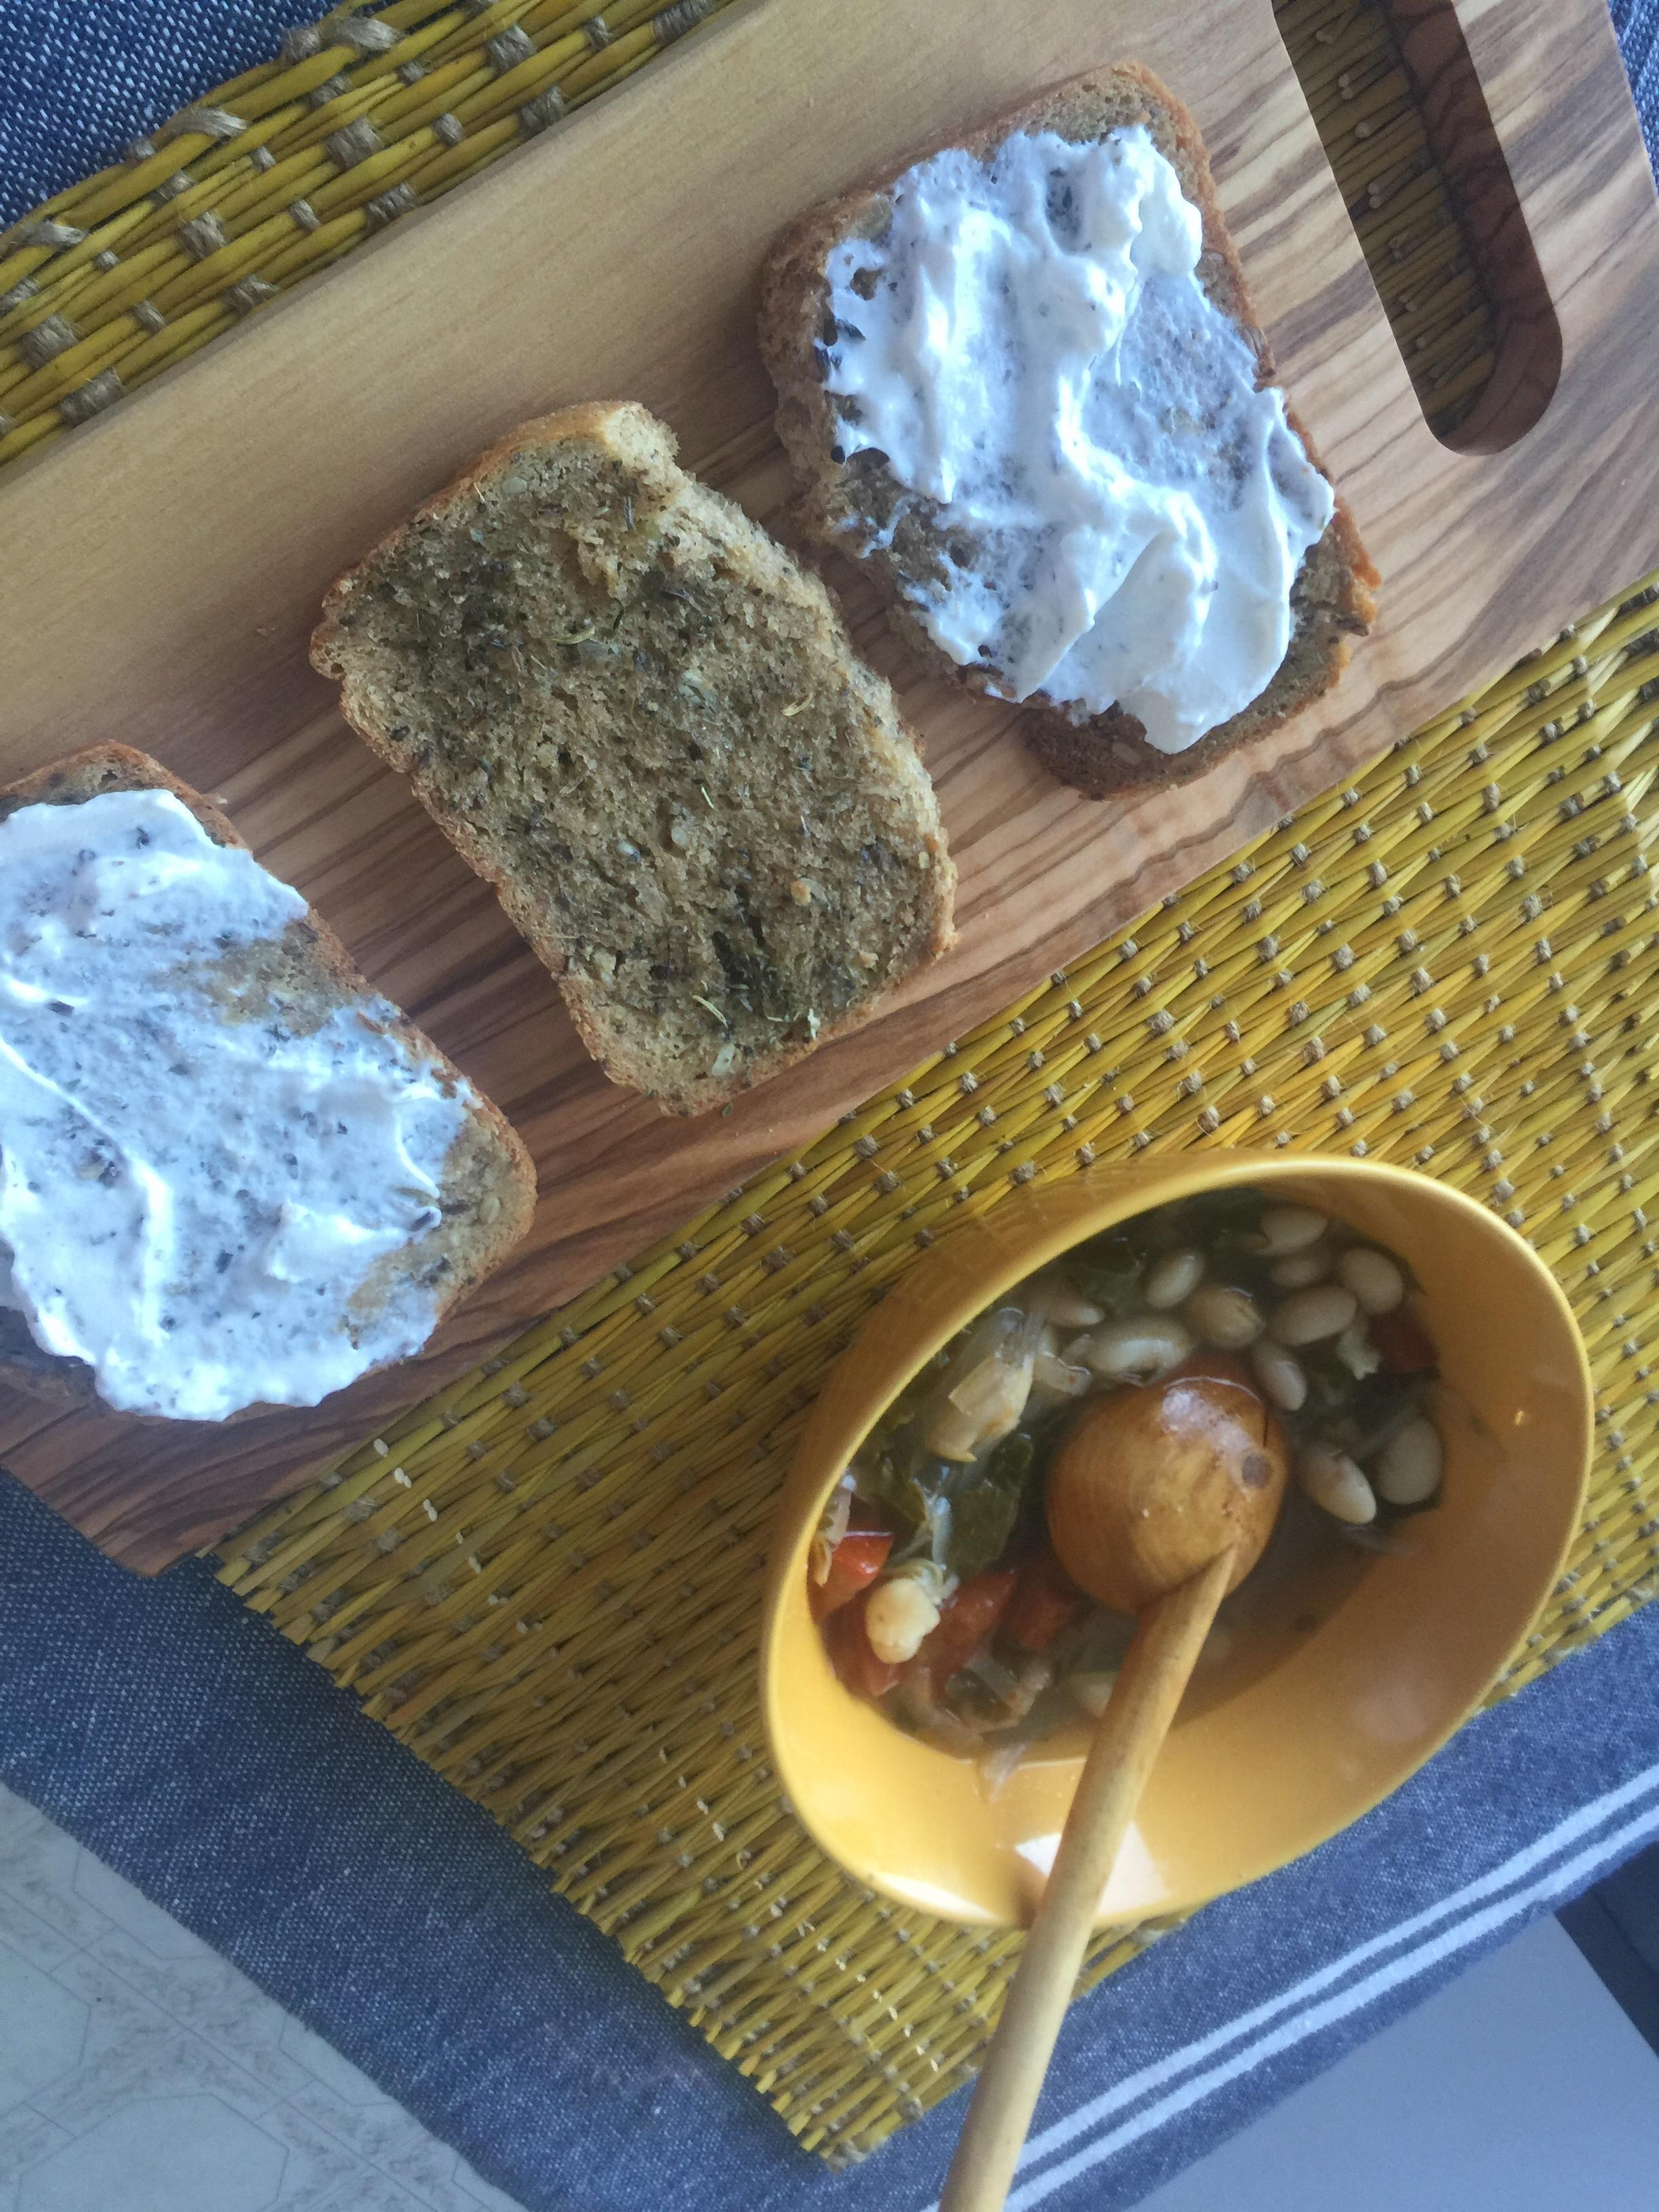 whitebean-kale-onions-tomatoes soup 7 home-made bread with herbes provinciales & lebne